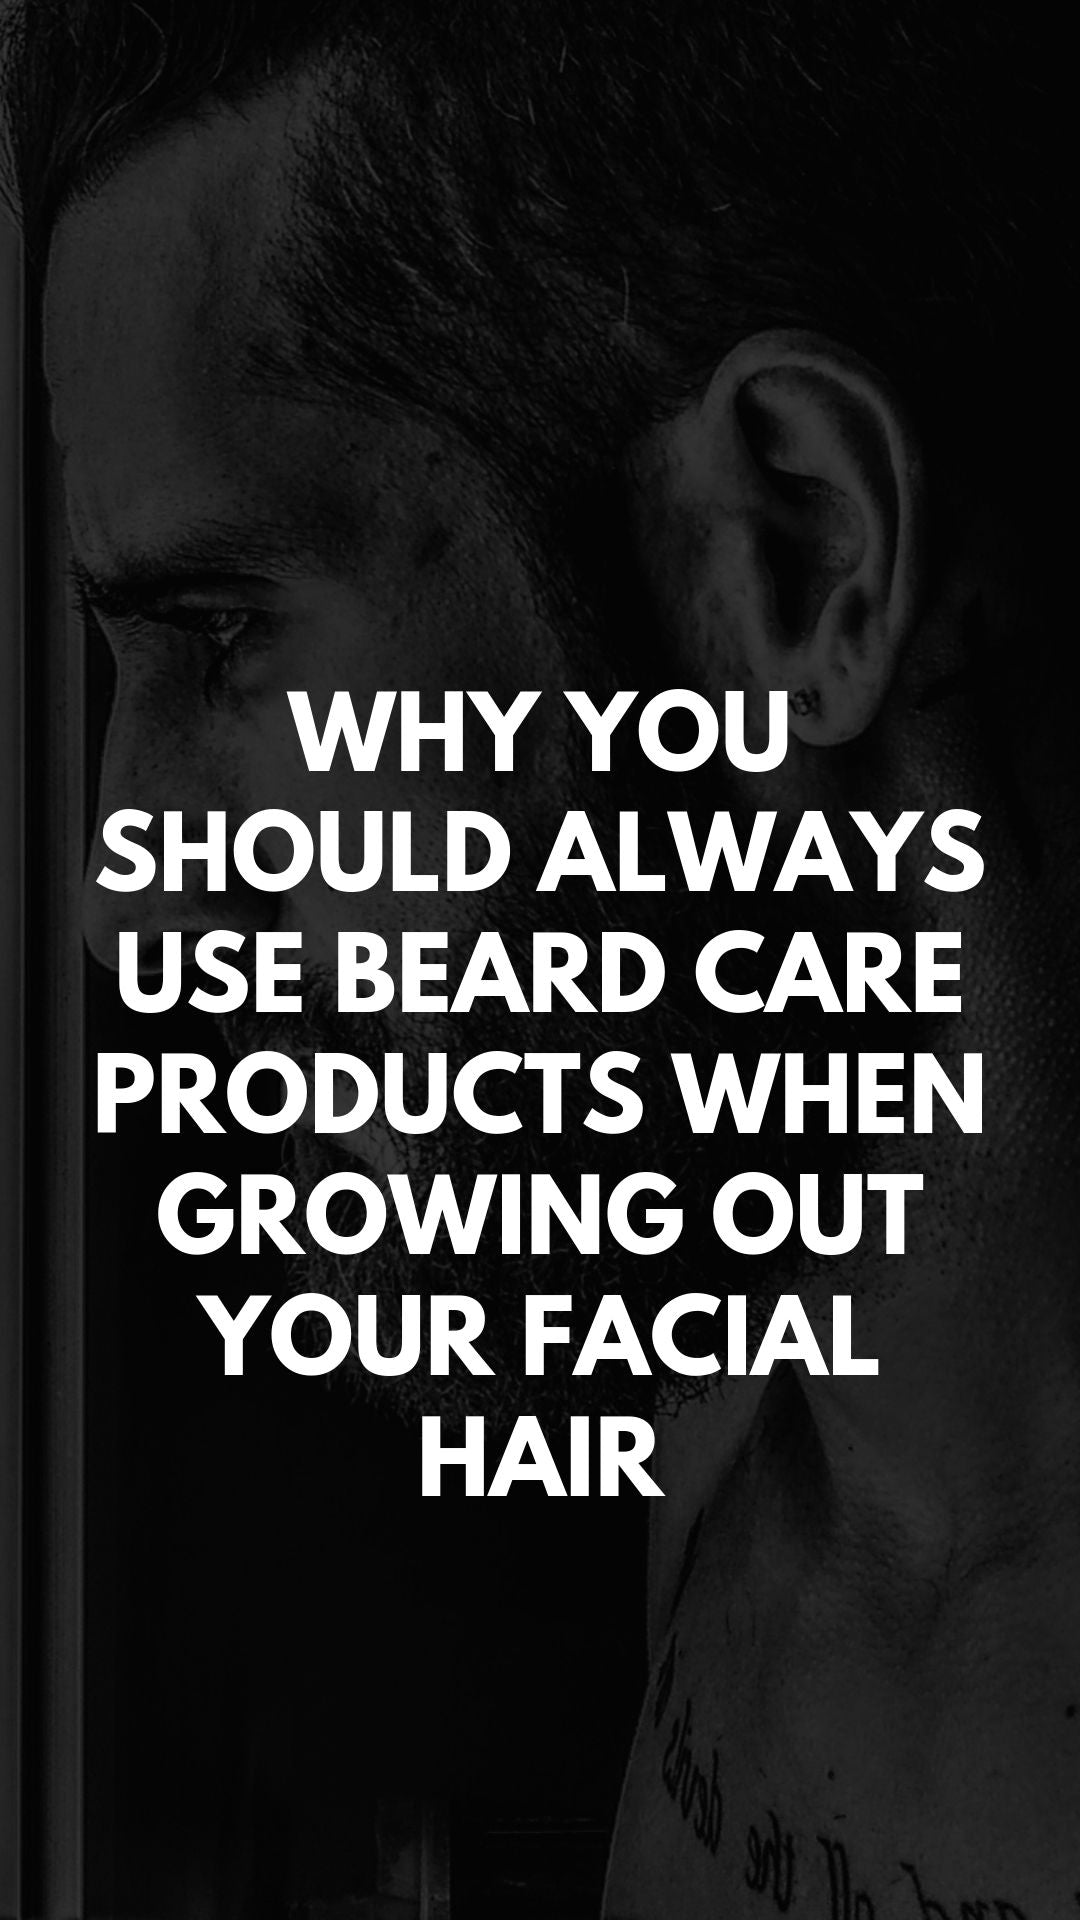 Why You Should Always Use Beard Care Products When Growing Out Your Facial Hair